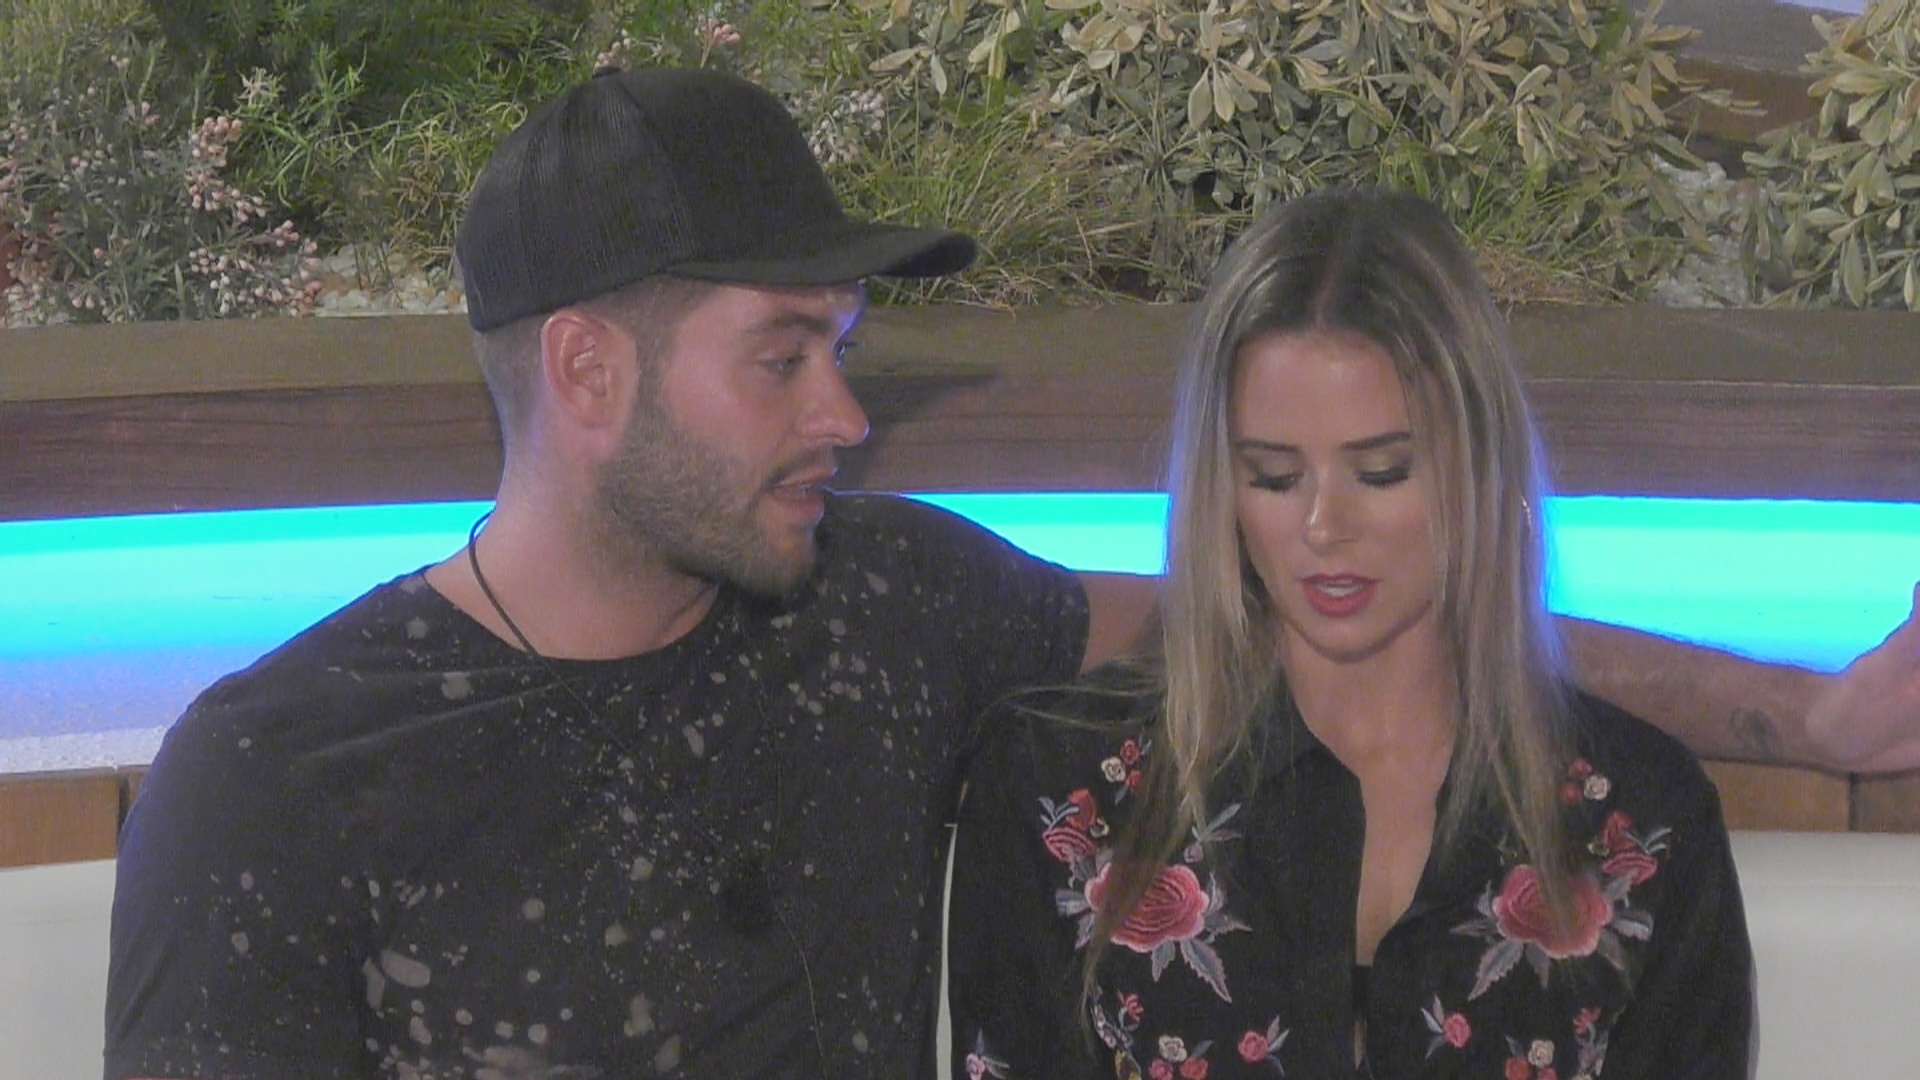 Love Island: If Jonny dumps Camilla it will be worse than watching someone kick a puppy